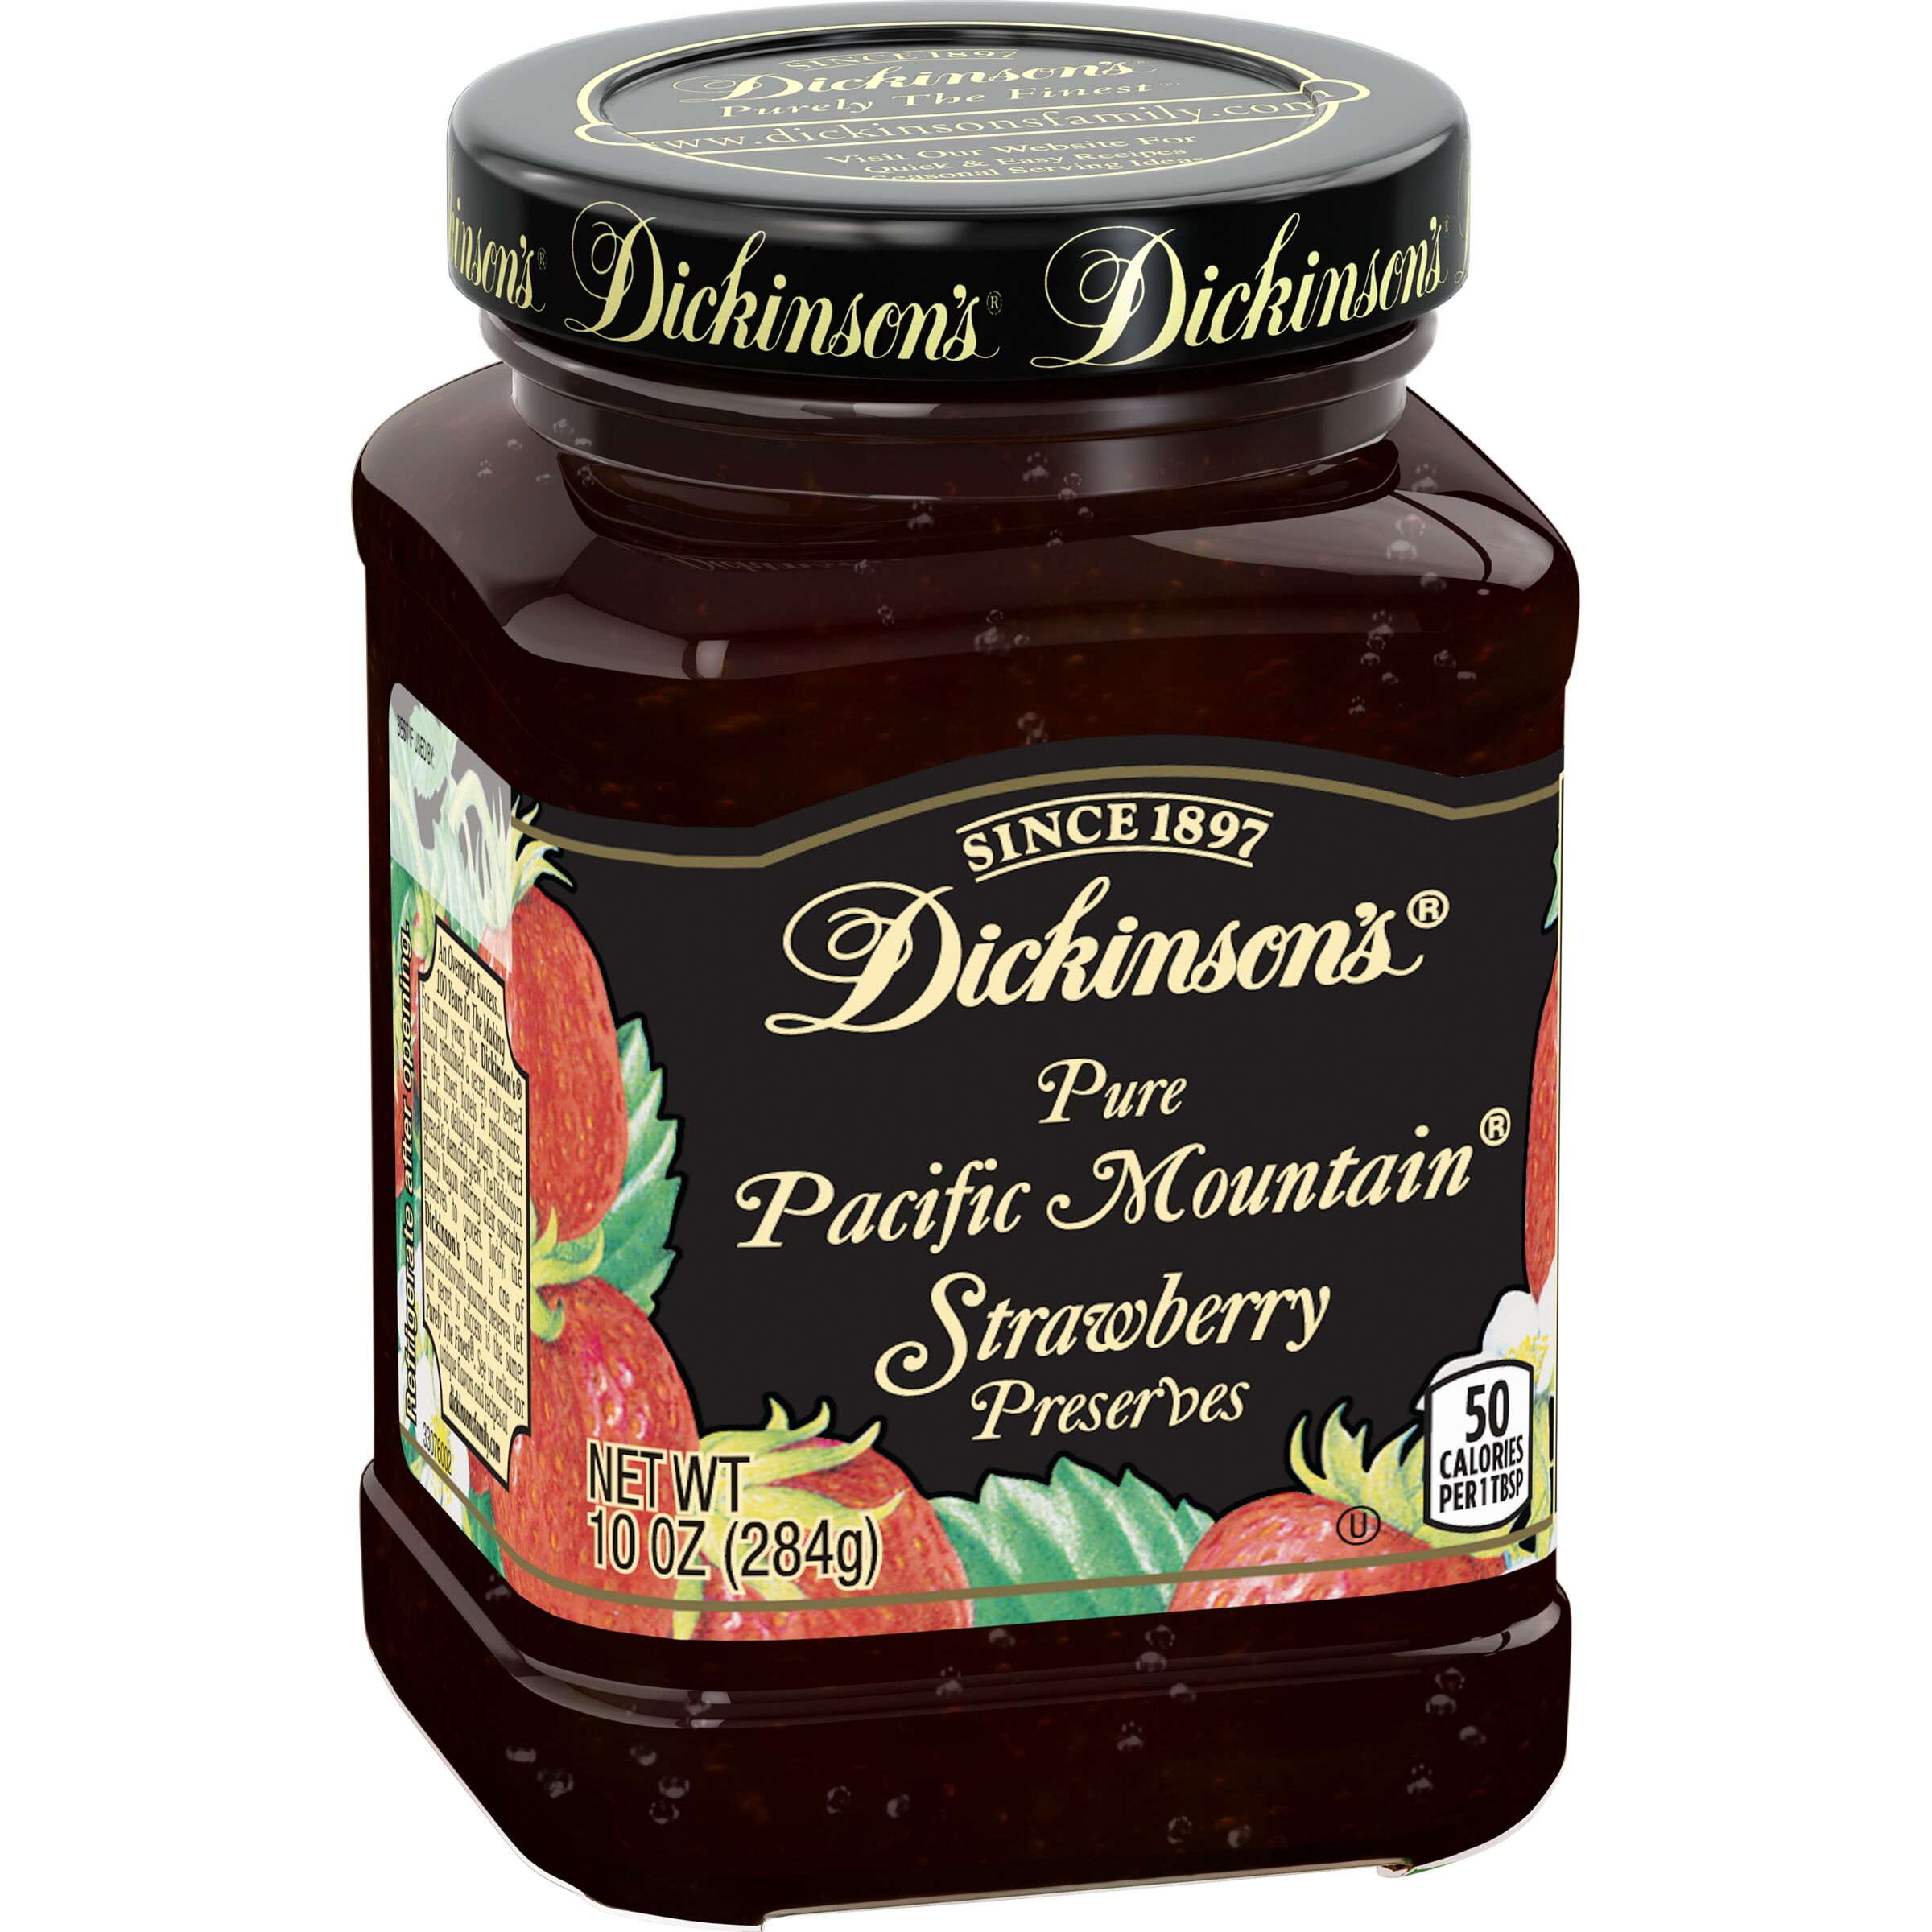 Dickinson's  Pacific Mountain® Strawberry Preserves